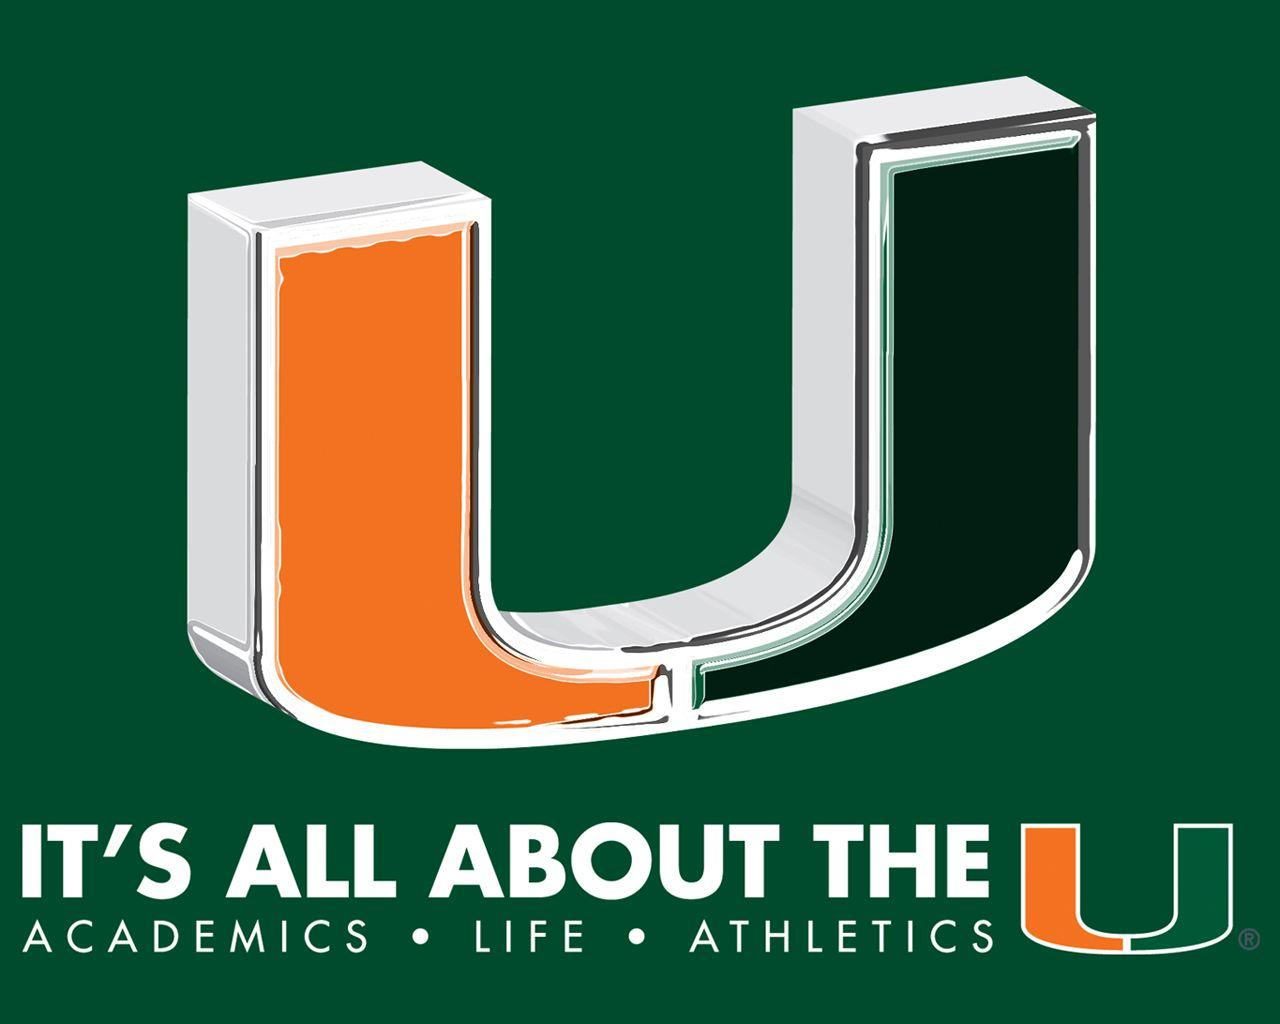 University Of Miami Wallpapers - Wallpaper Cave